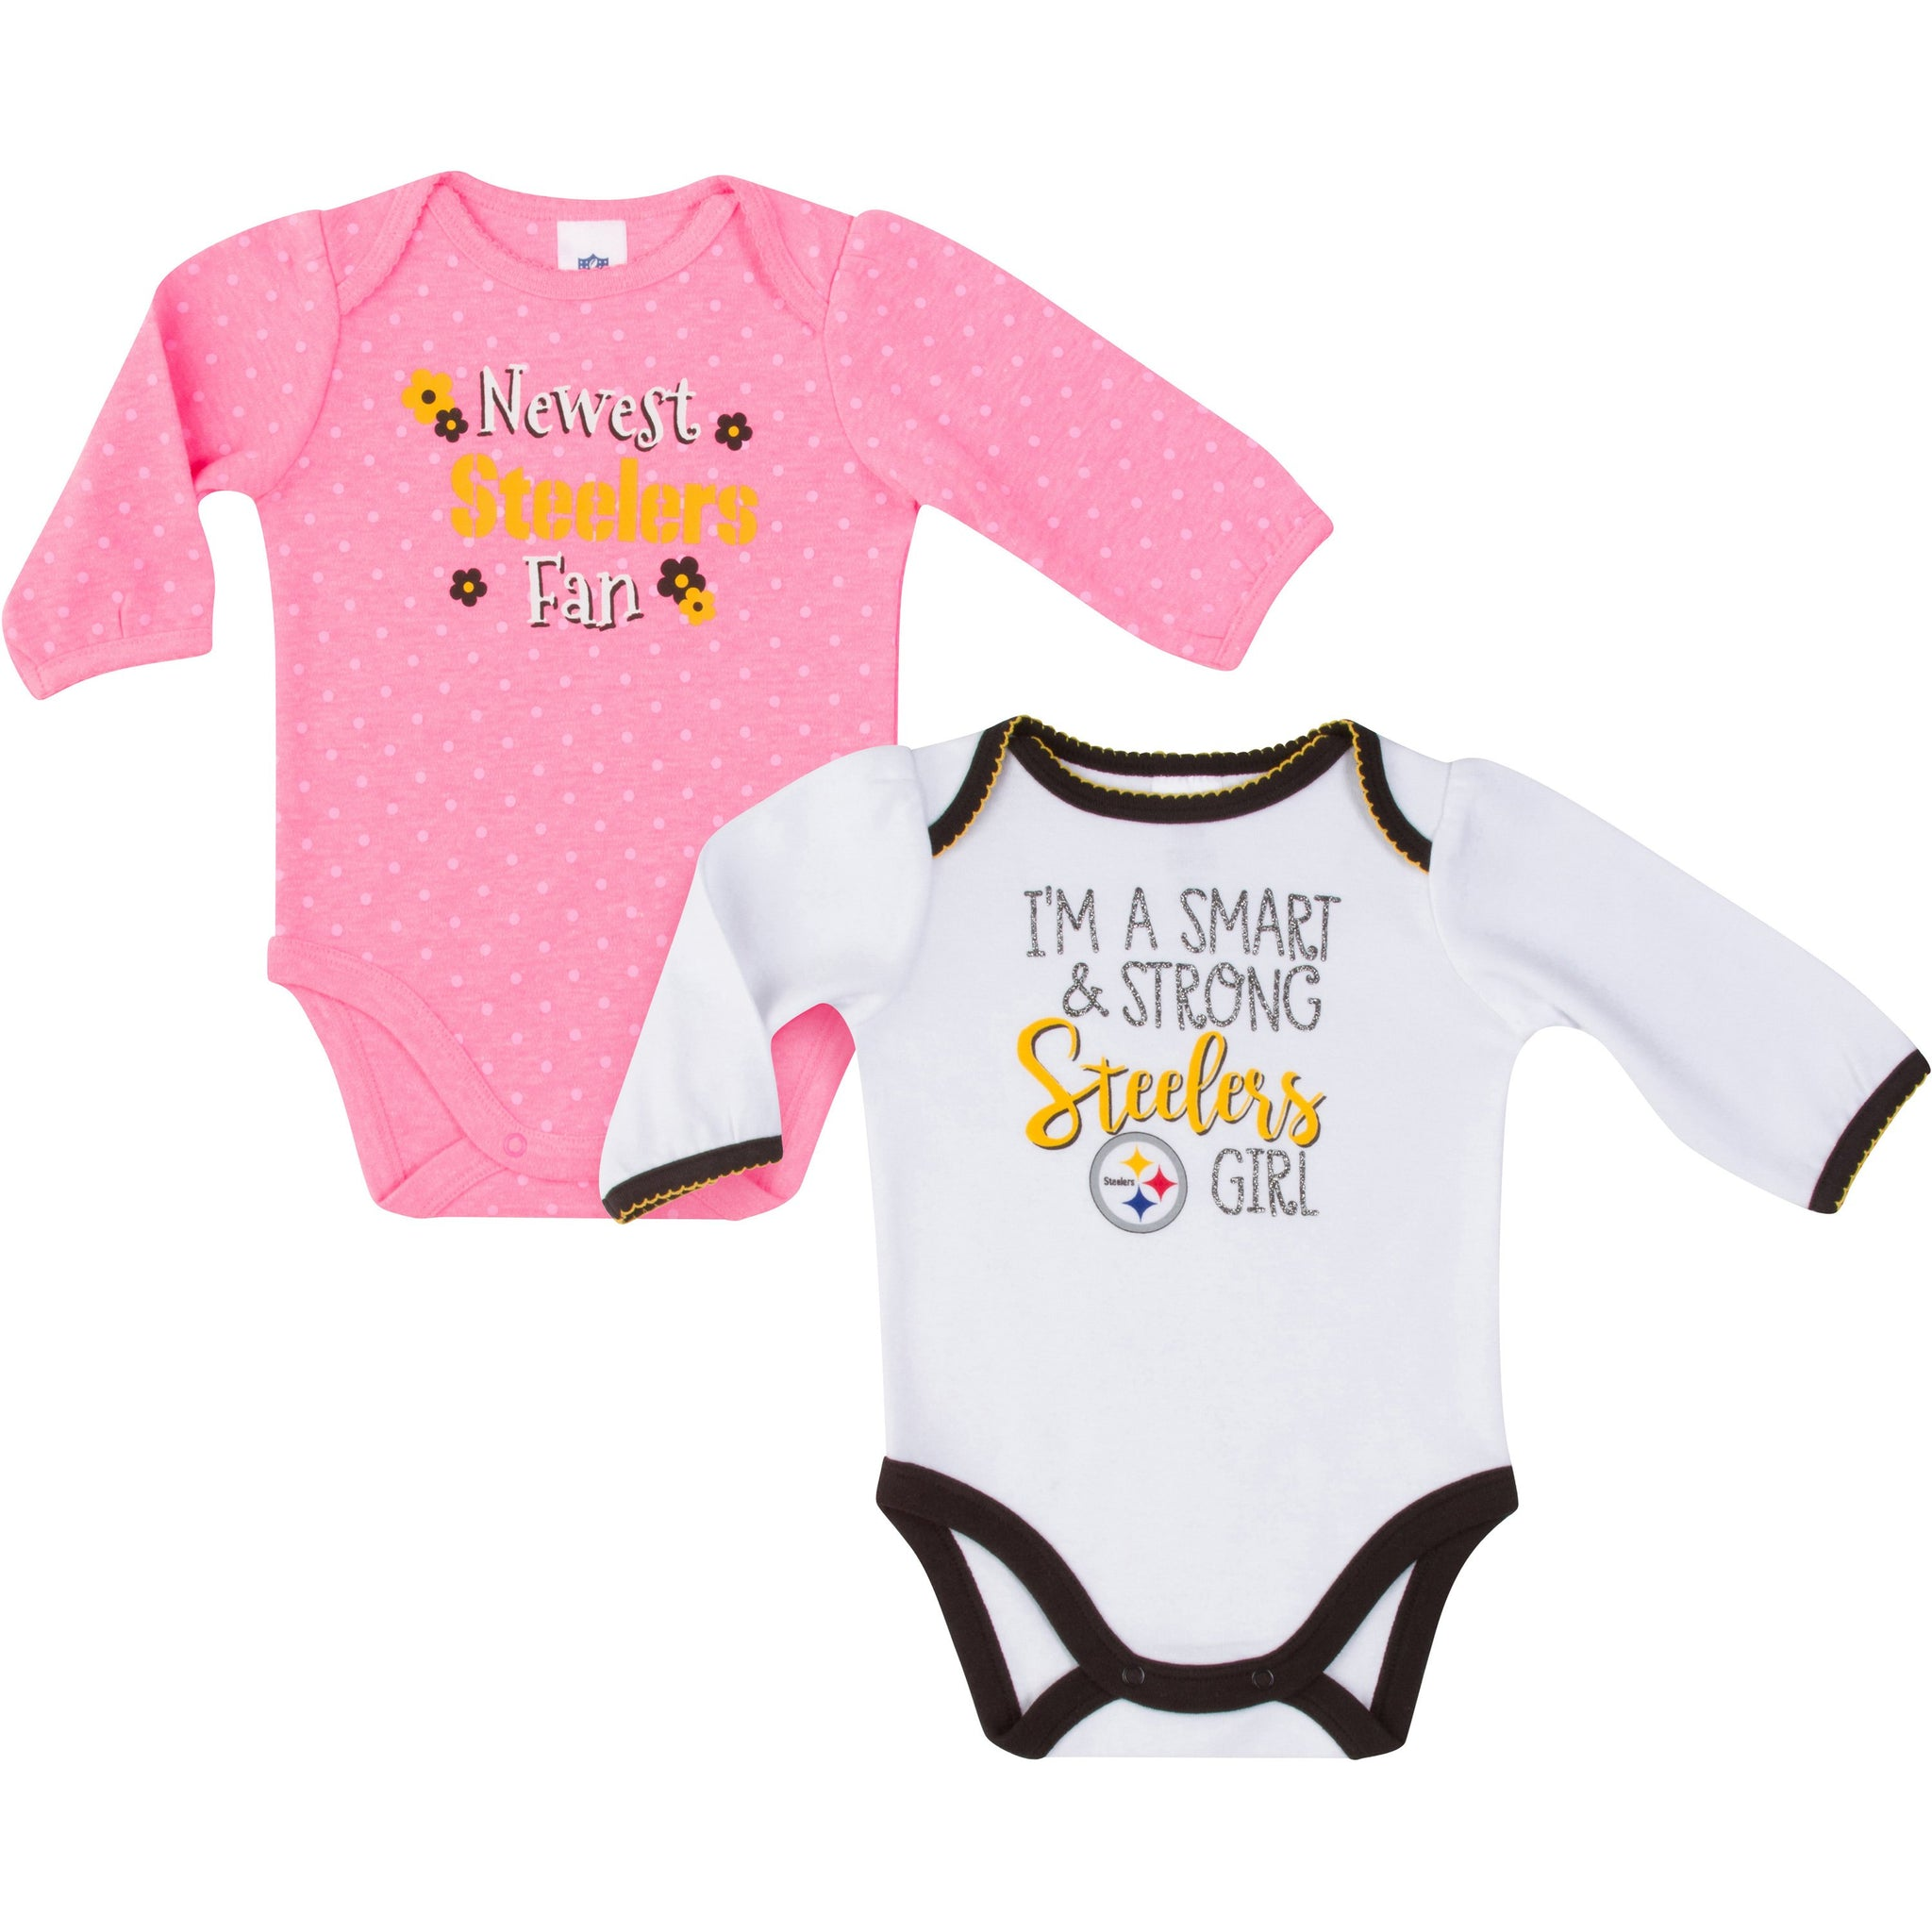 Pittsburgh Steelers Baby Girl Long Sleeve Bodysuit, 2-pack -Gerber Childrenswear